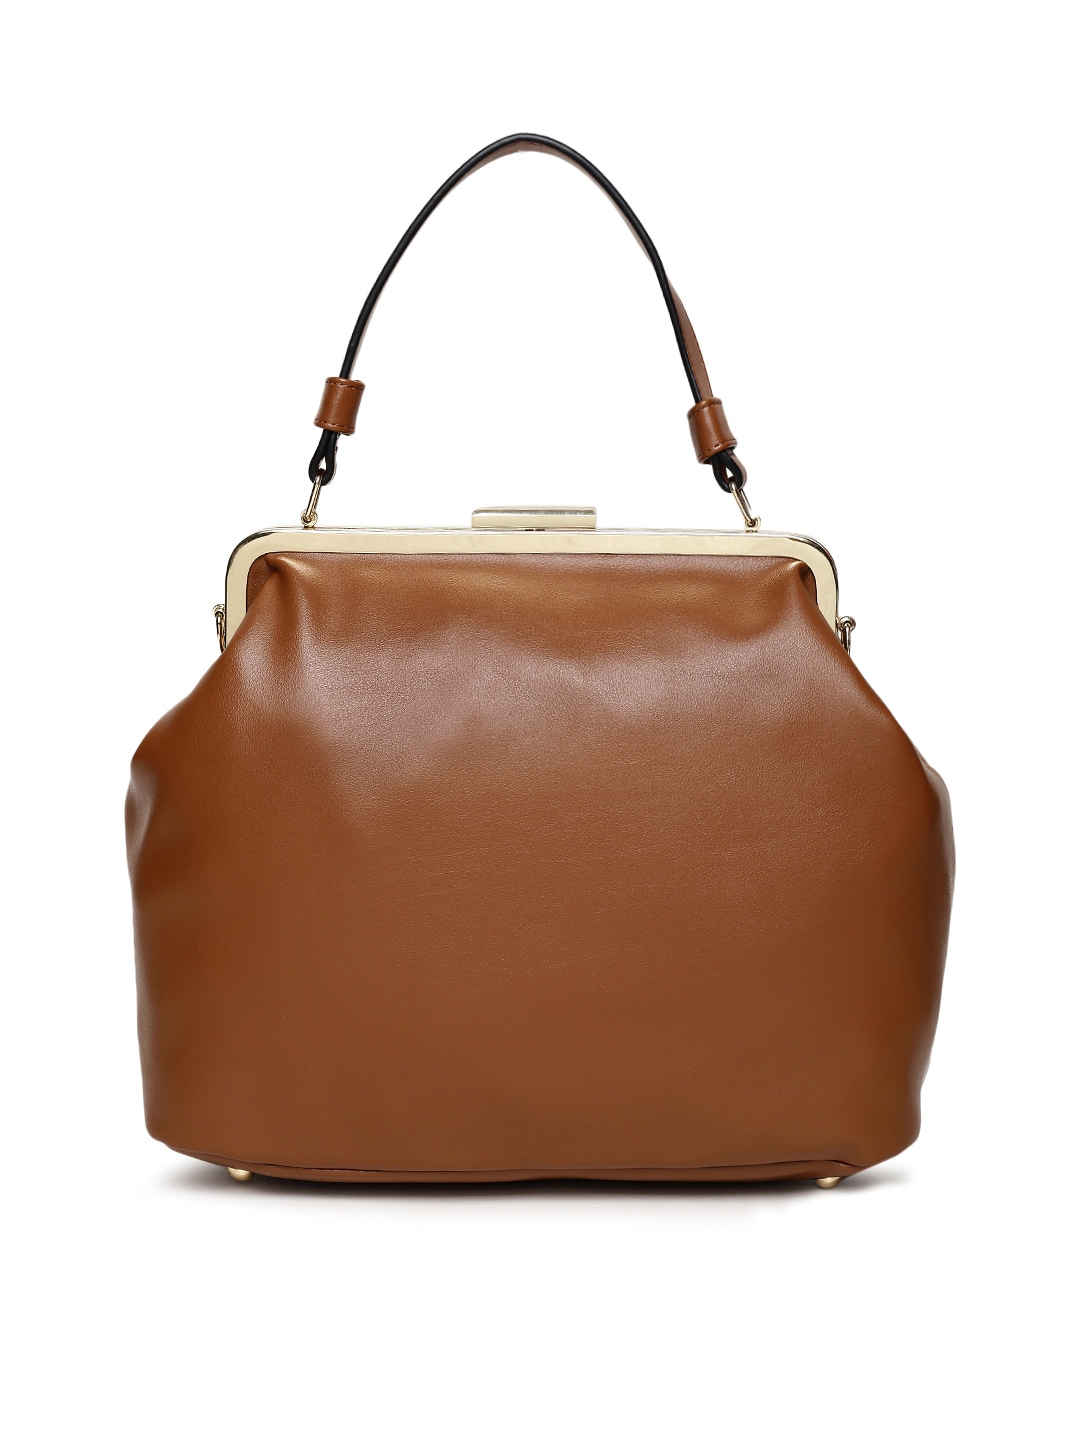 Tan Handbags - Buy Tan Handbags online in India